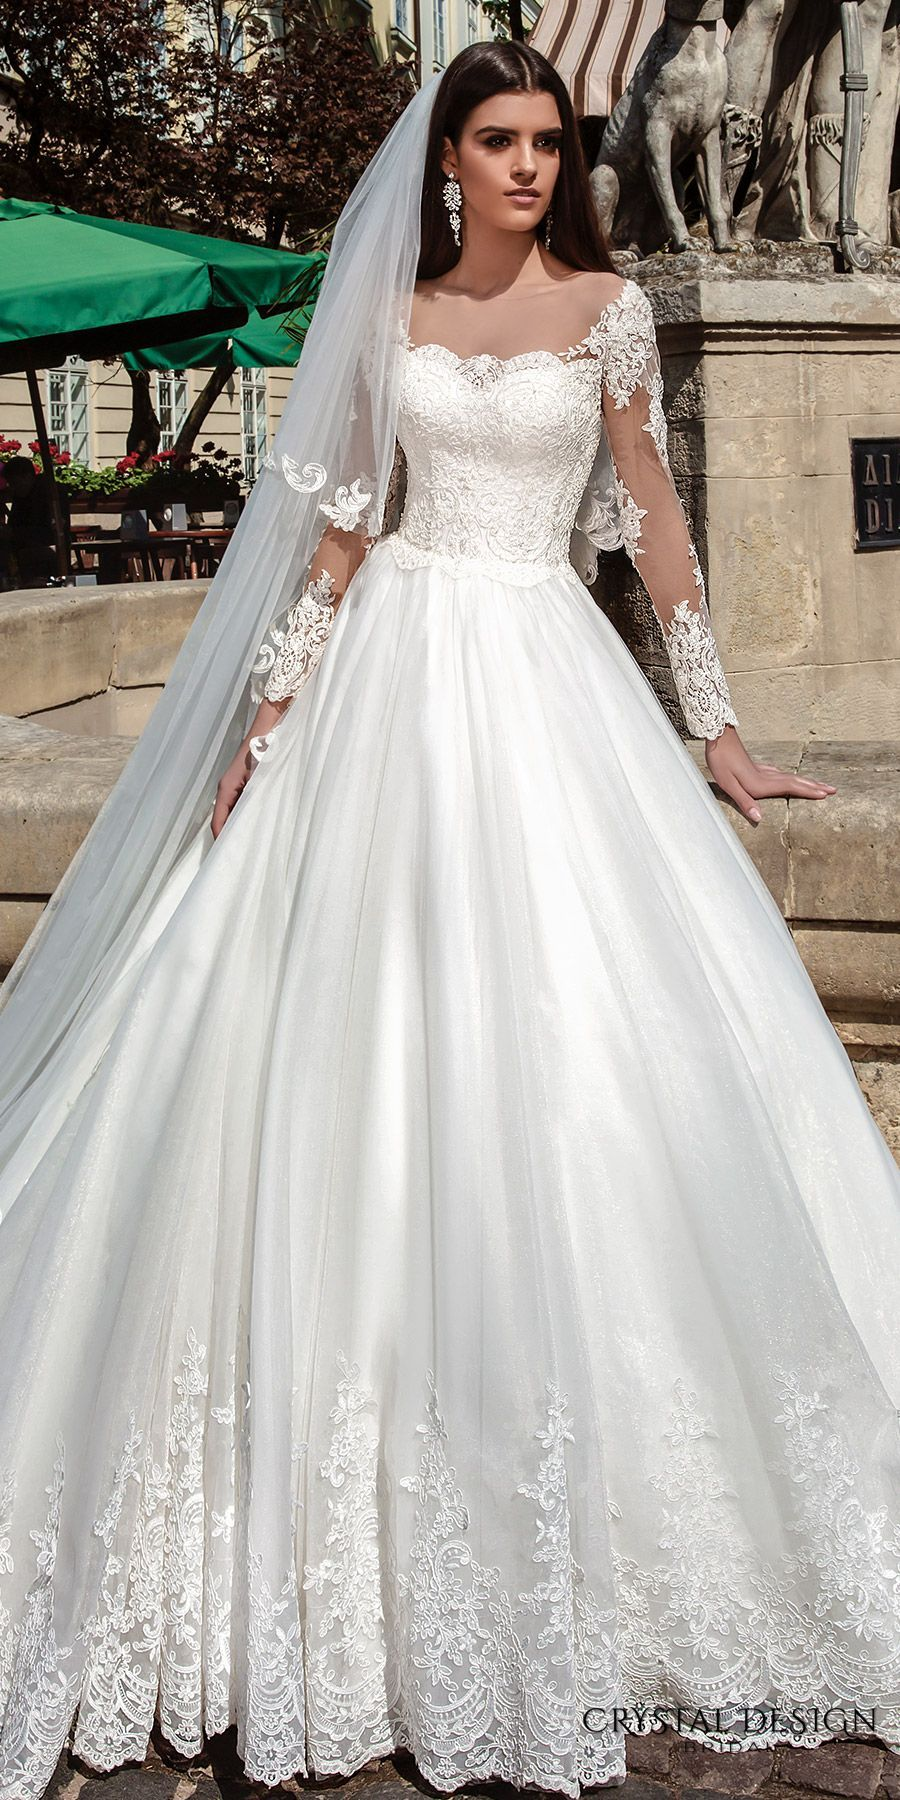 Weddings In 2020 Ball Gowns Wedding Ball Gown Wedding Dress Bridal Dresses,Wedding Dress In Chicago